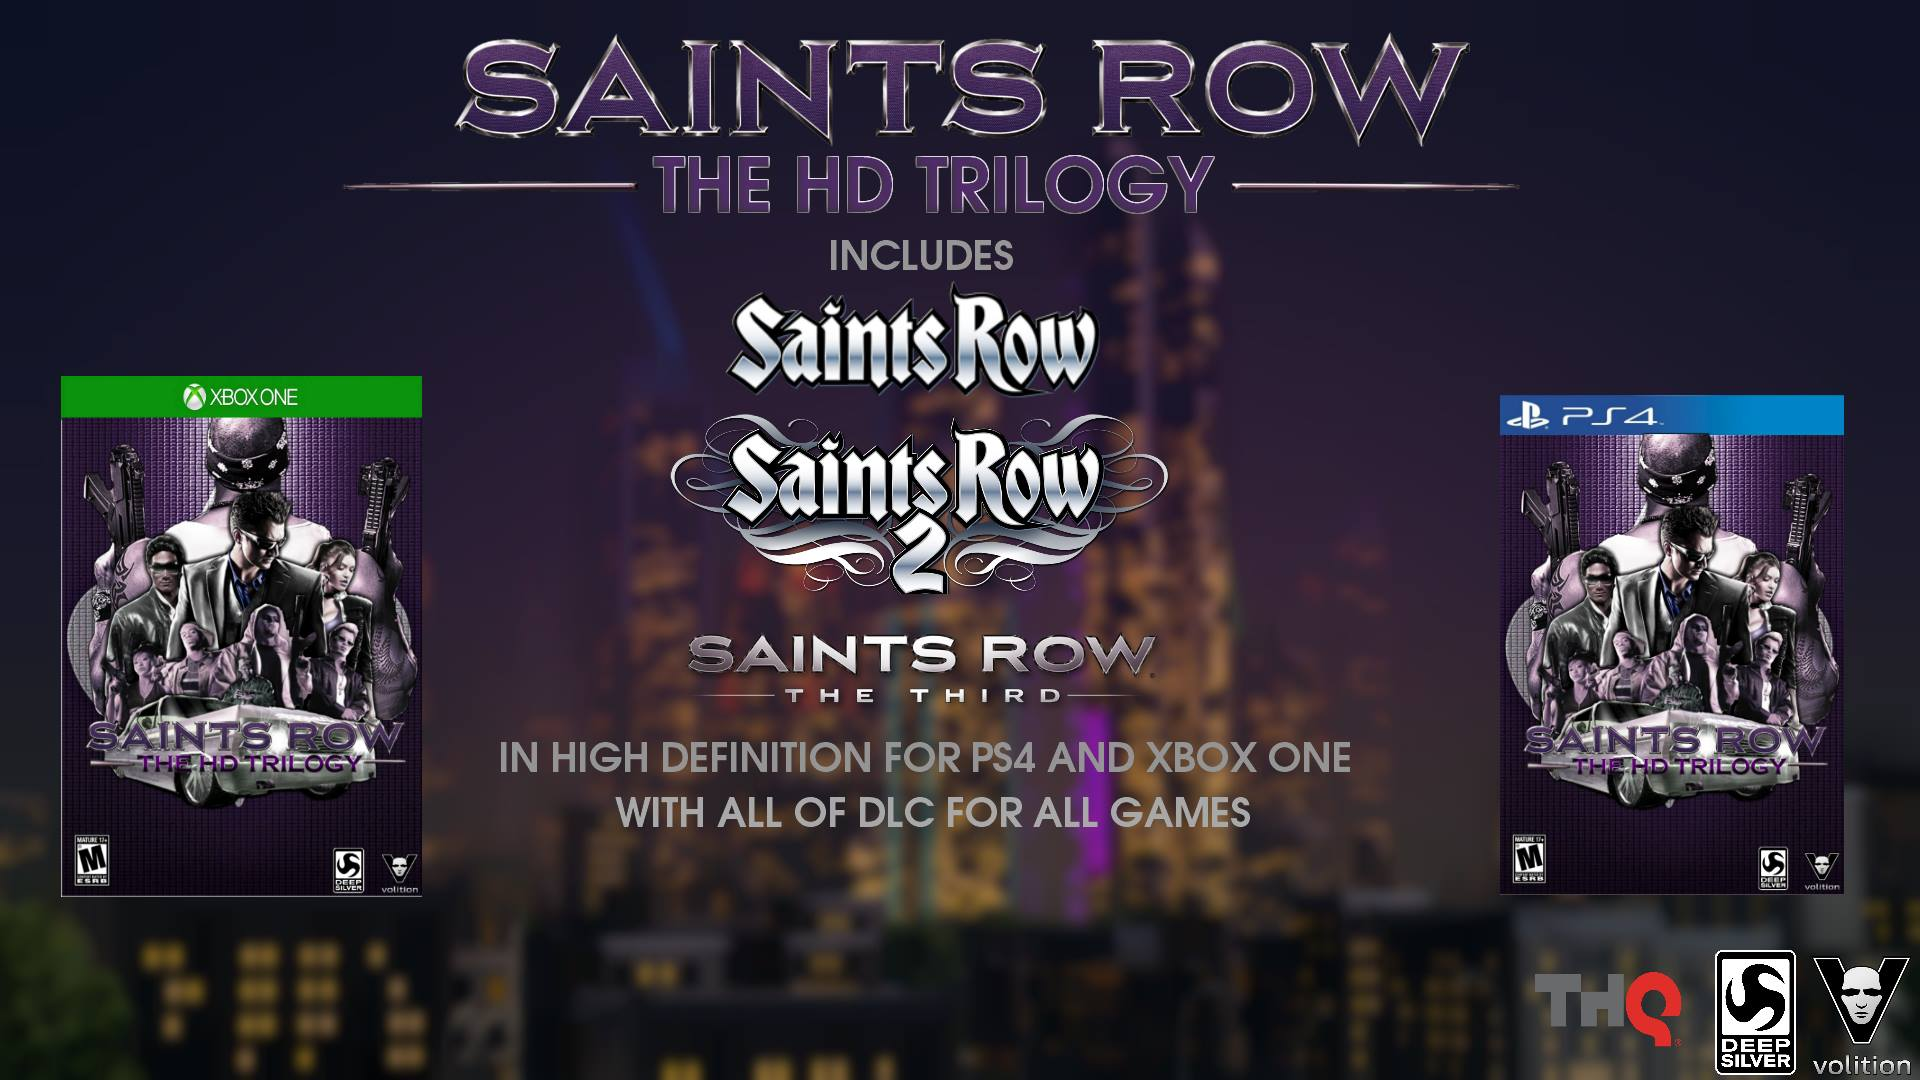 saints_row__the_hd_trilogy_by_yearlingpo